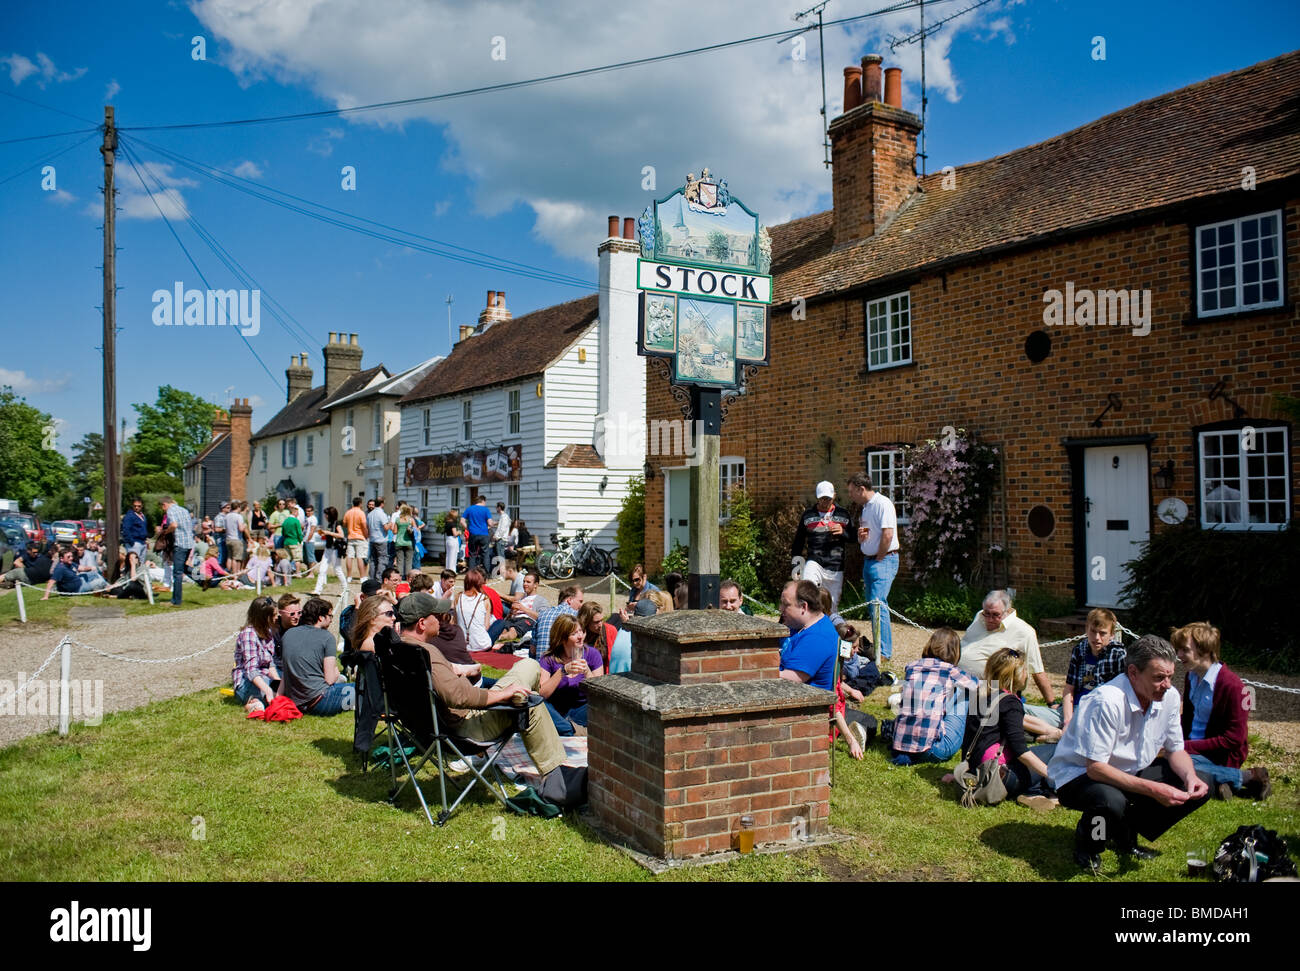 Crowds of people outside the Hoop Public House in the village of Stock in Essex.  Photo by Gordon Scammell - Stock Image